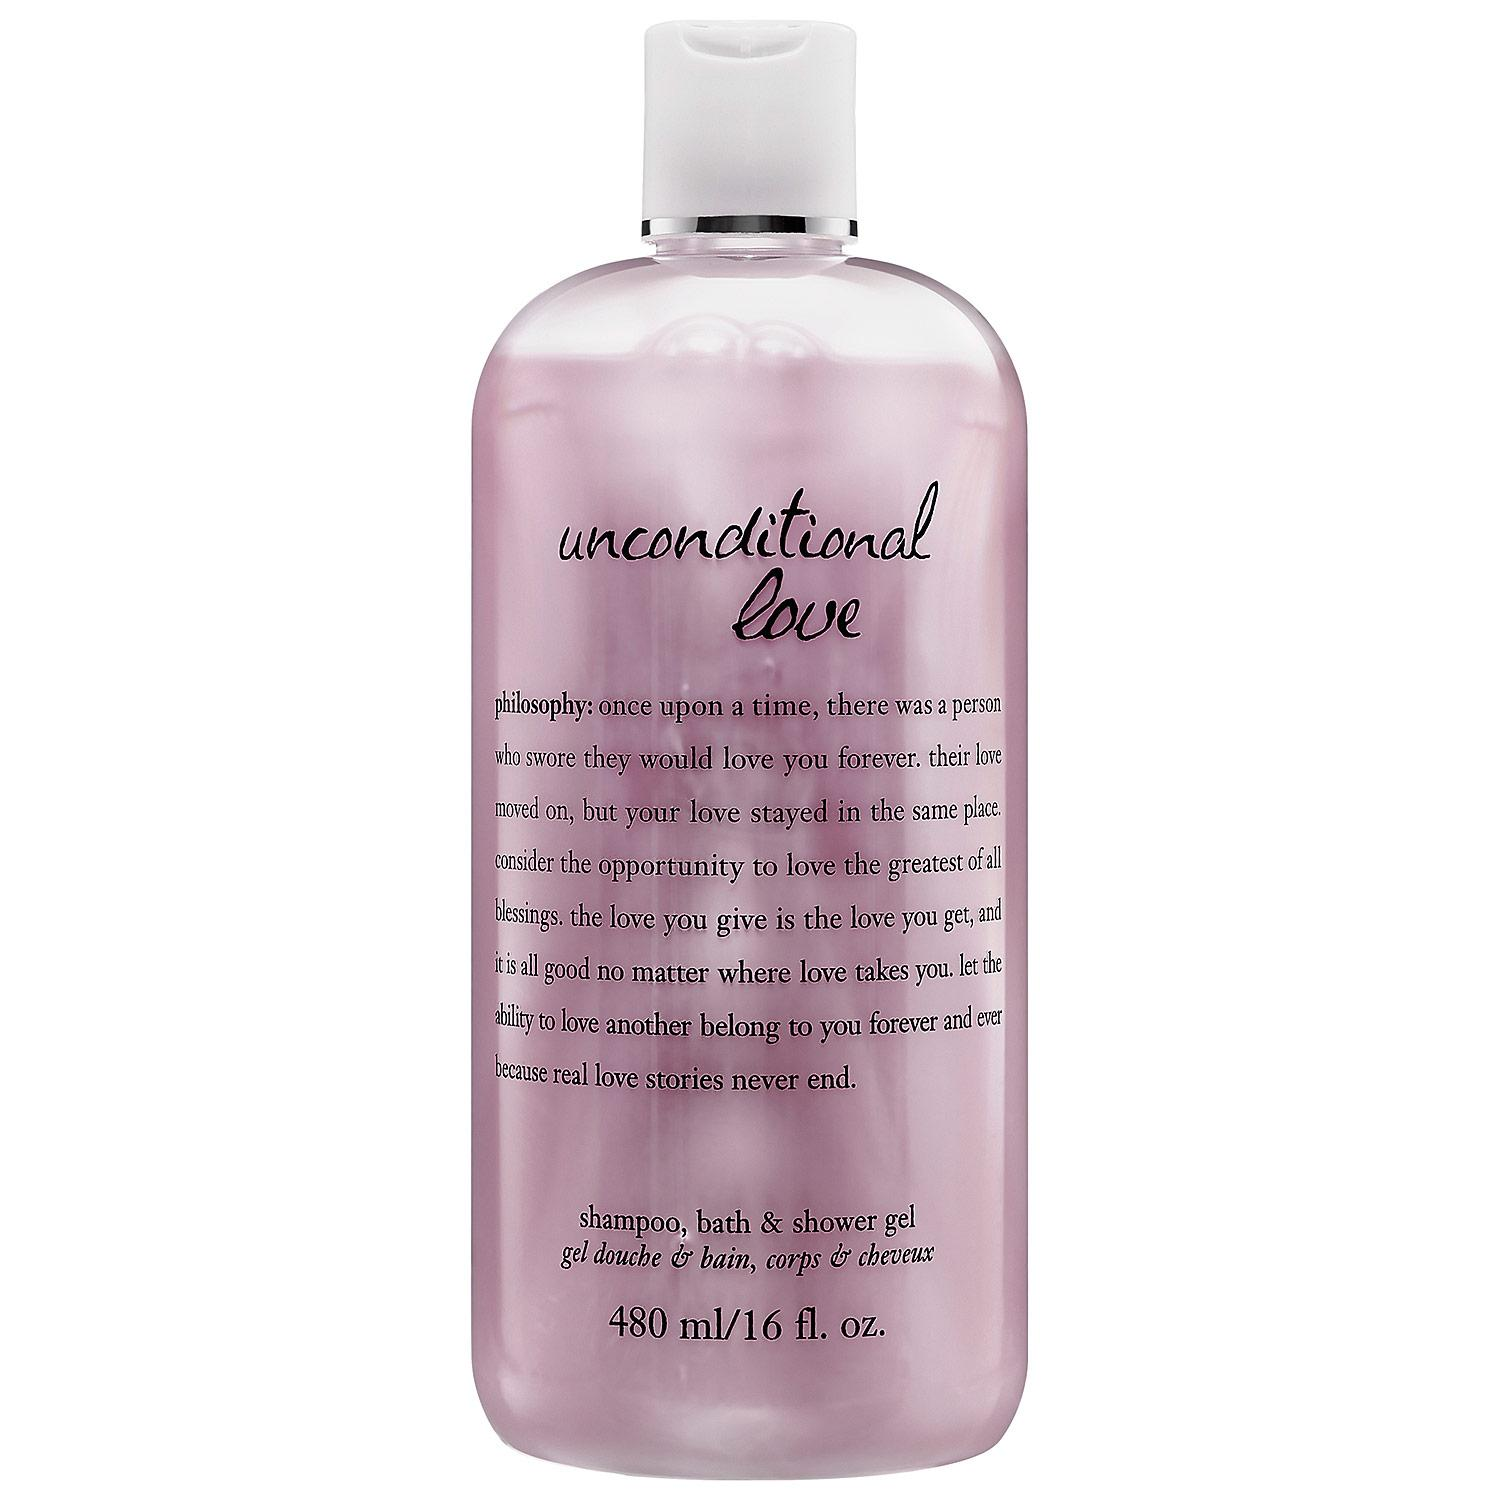 Unconditional Love Shampoo, Bath and Shower Gel